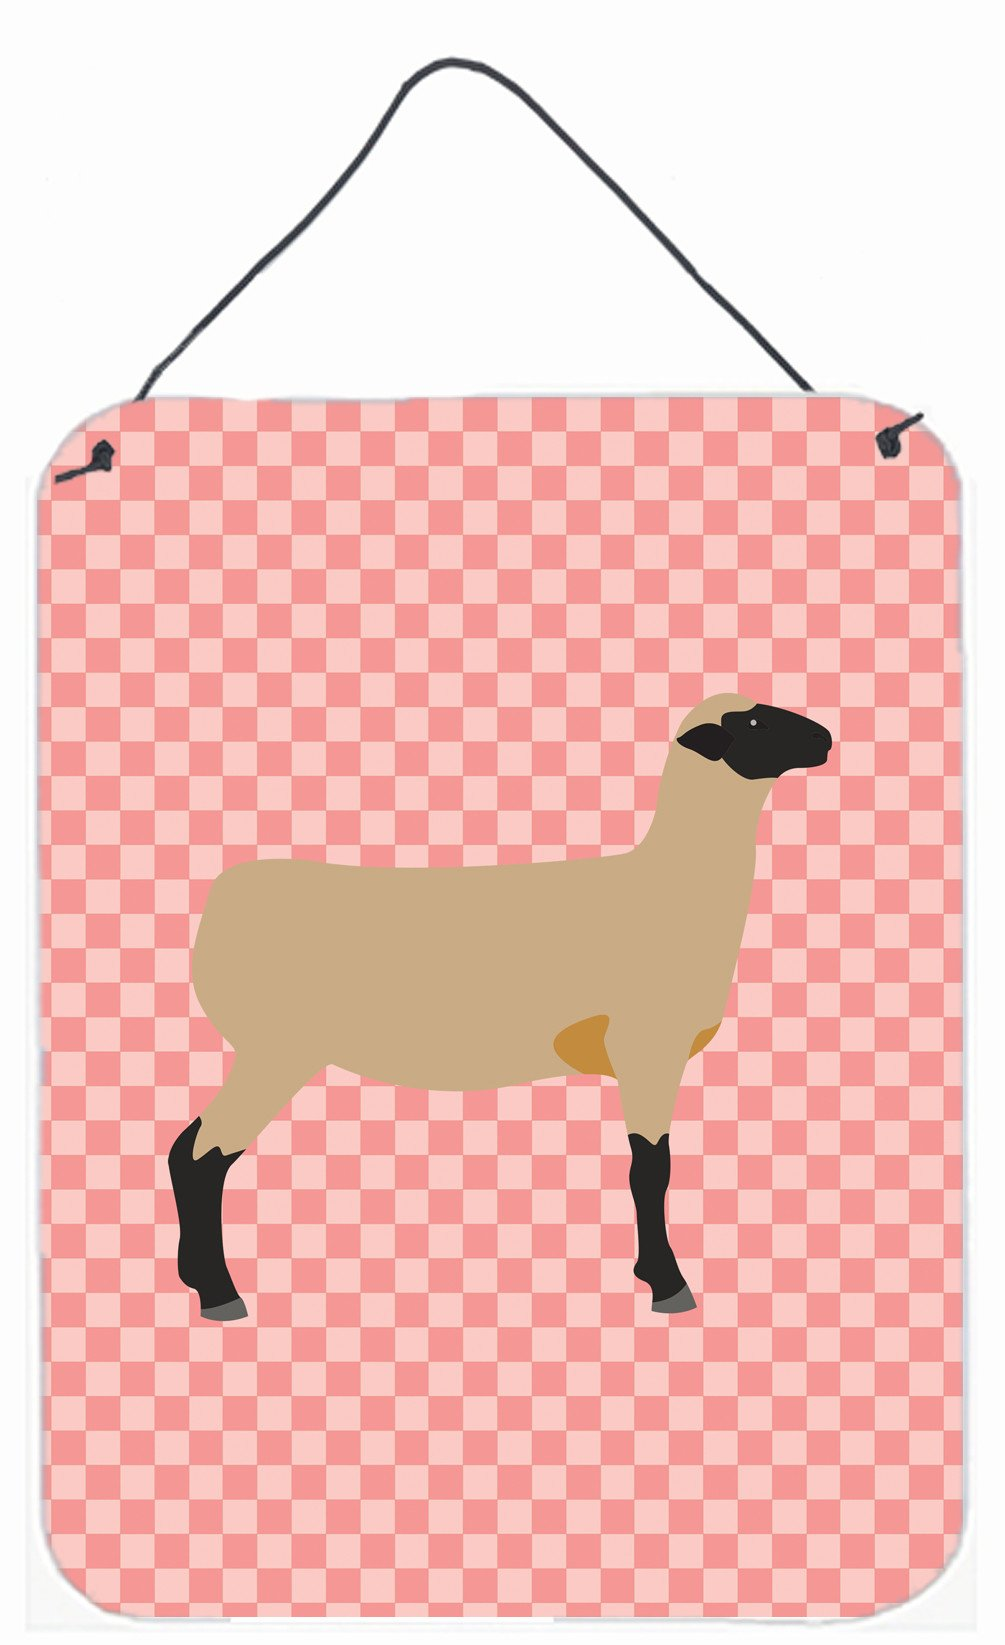 Hampshire Down Sheep Pink Check Wall or Door Hanging Prints BB7976DS1216 by Caroline's Treasures